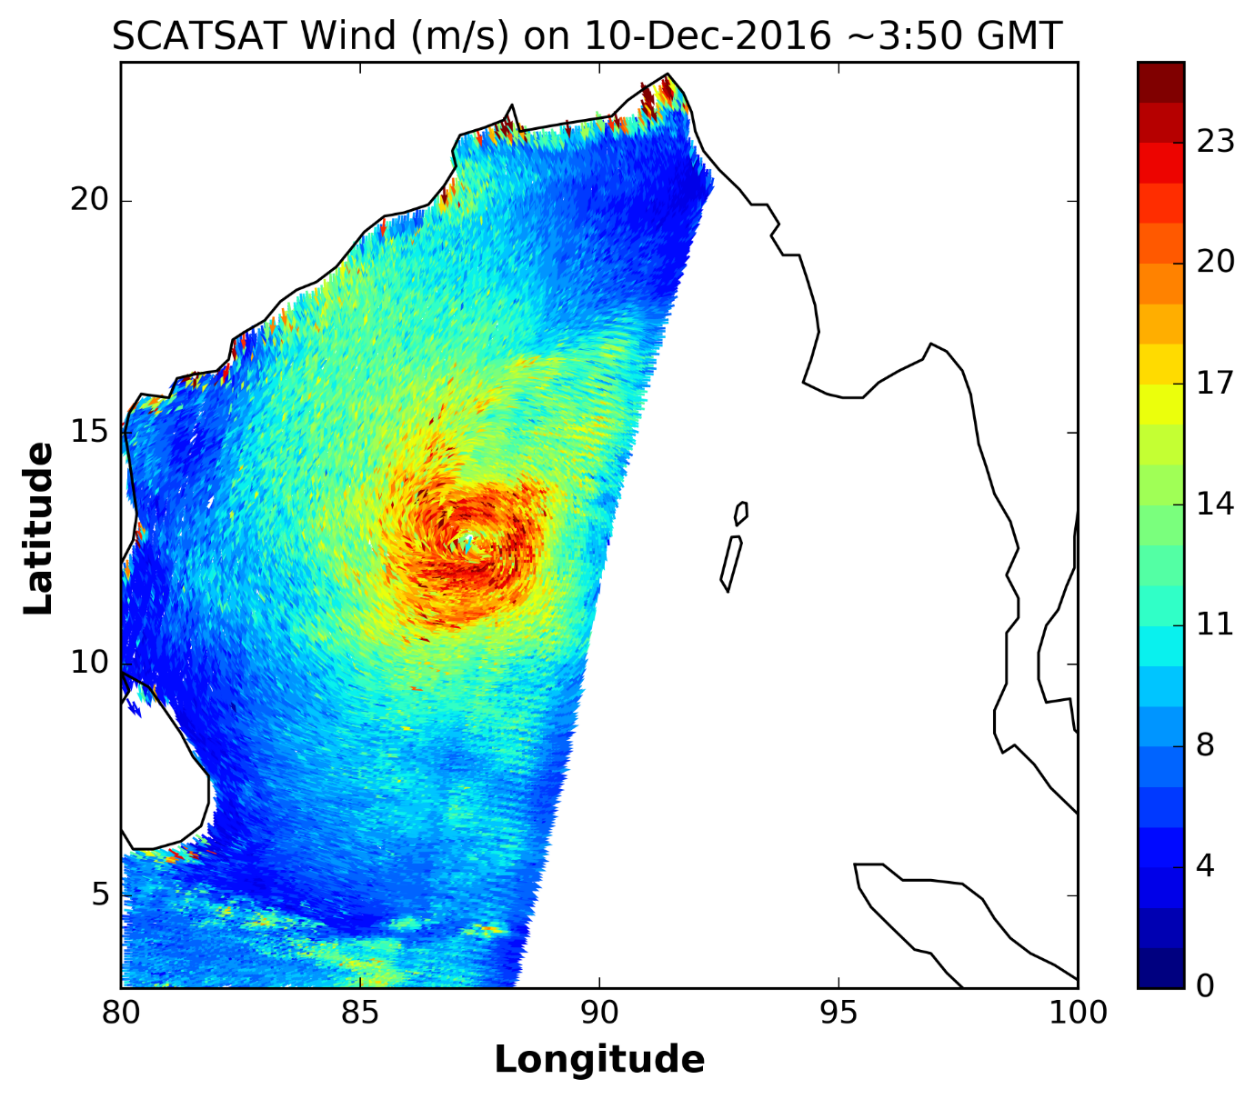 Snapshot of high resolution winds captured by SCATSAT during cyclone Vardha in Bay of Bengal during 10th December 2016